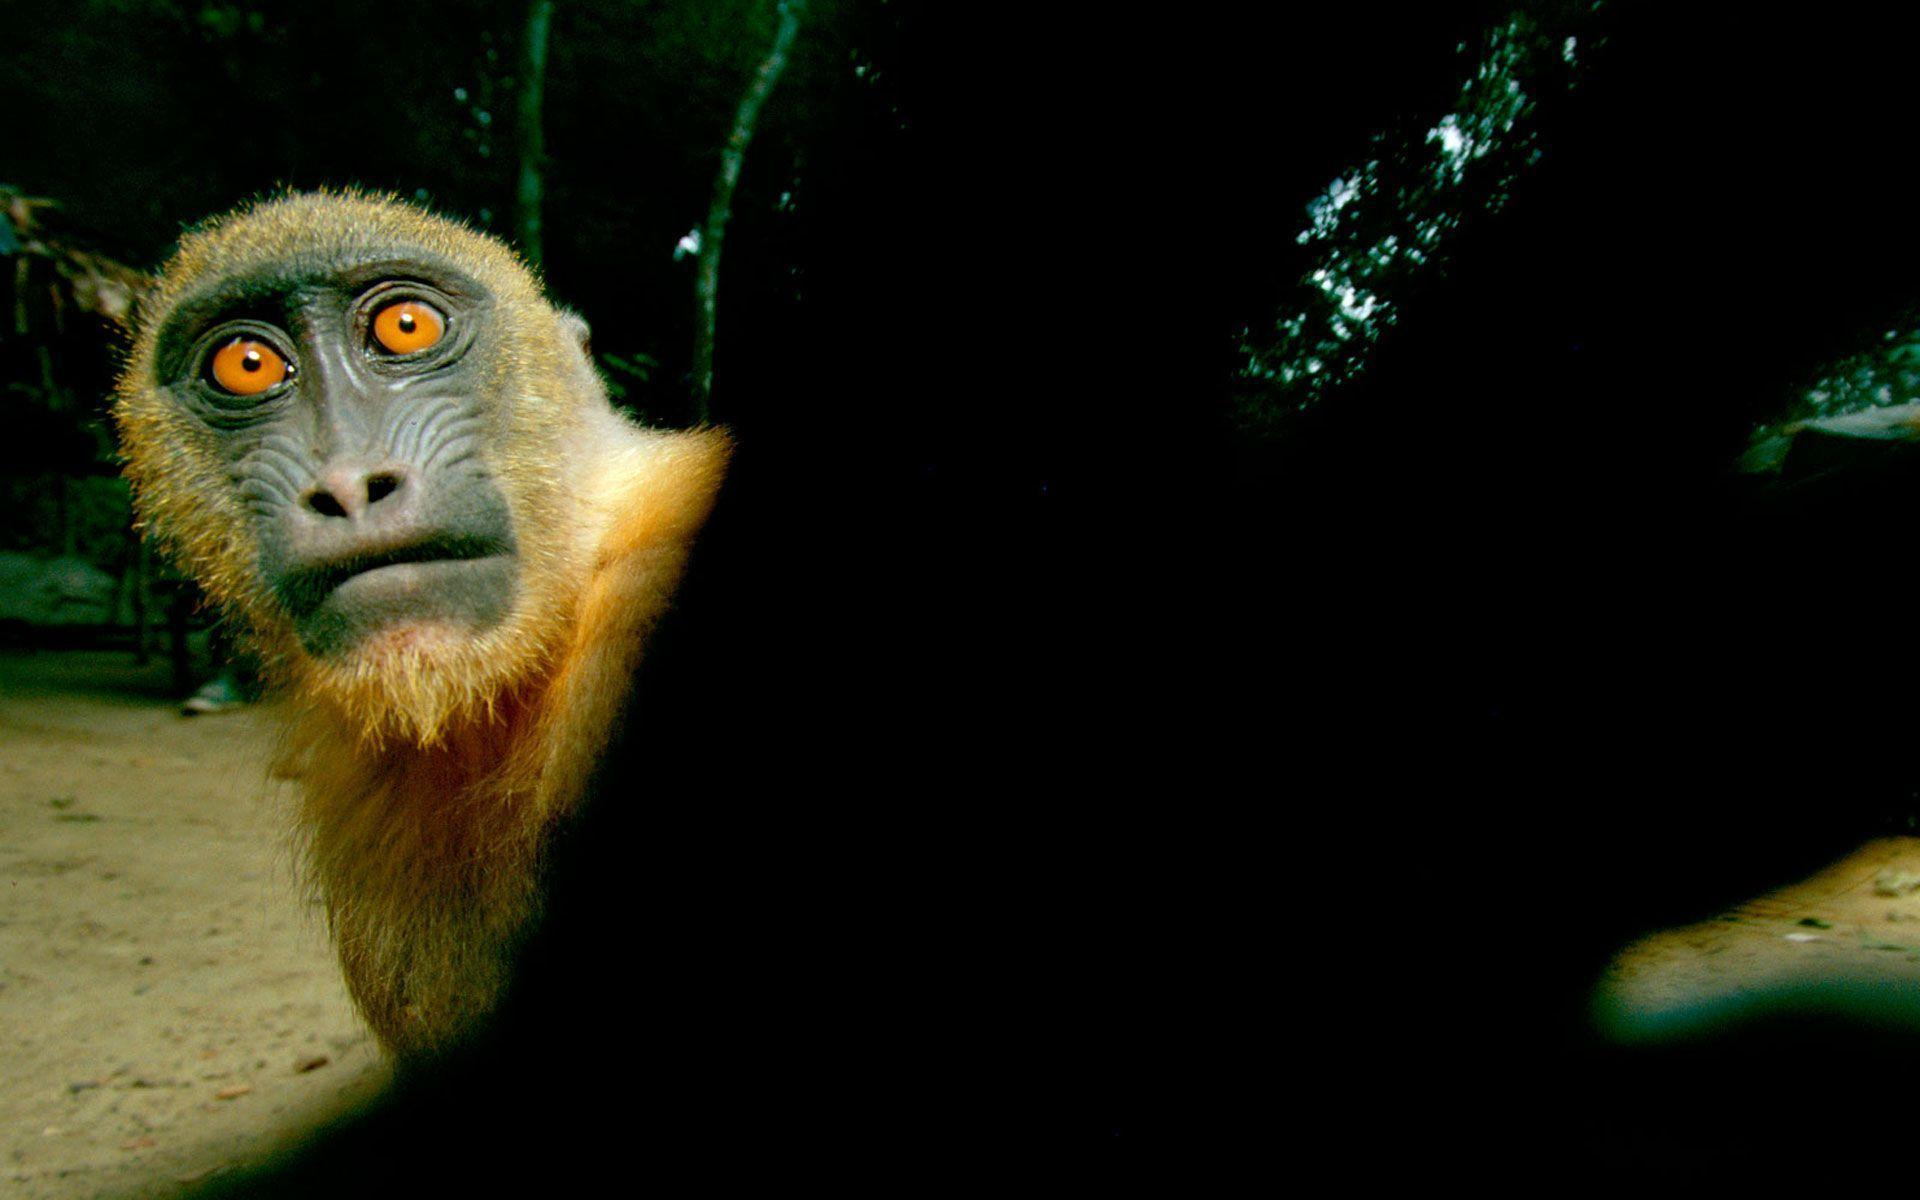 funny monkey wallpaper - photo #29